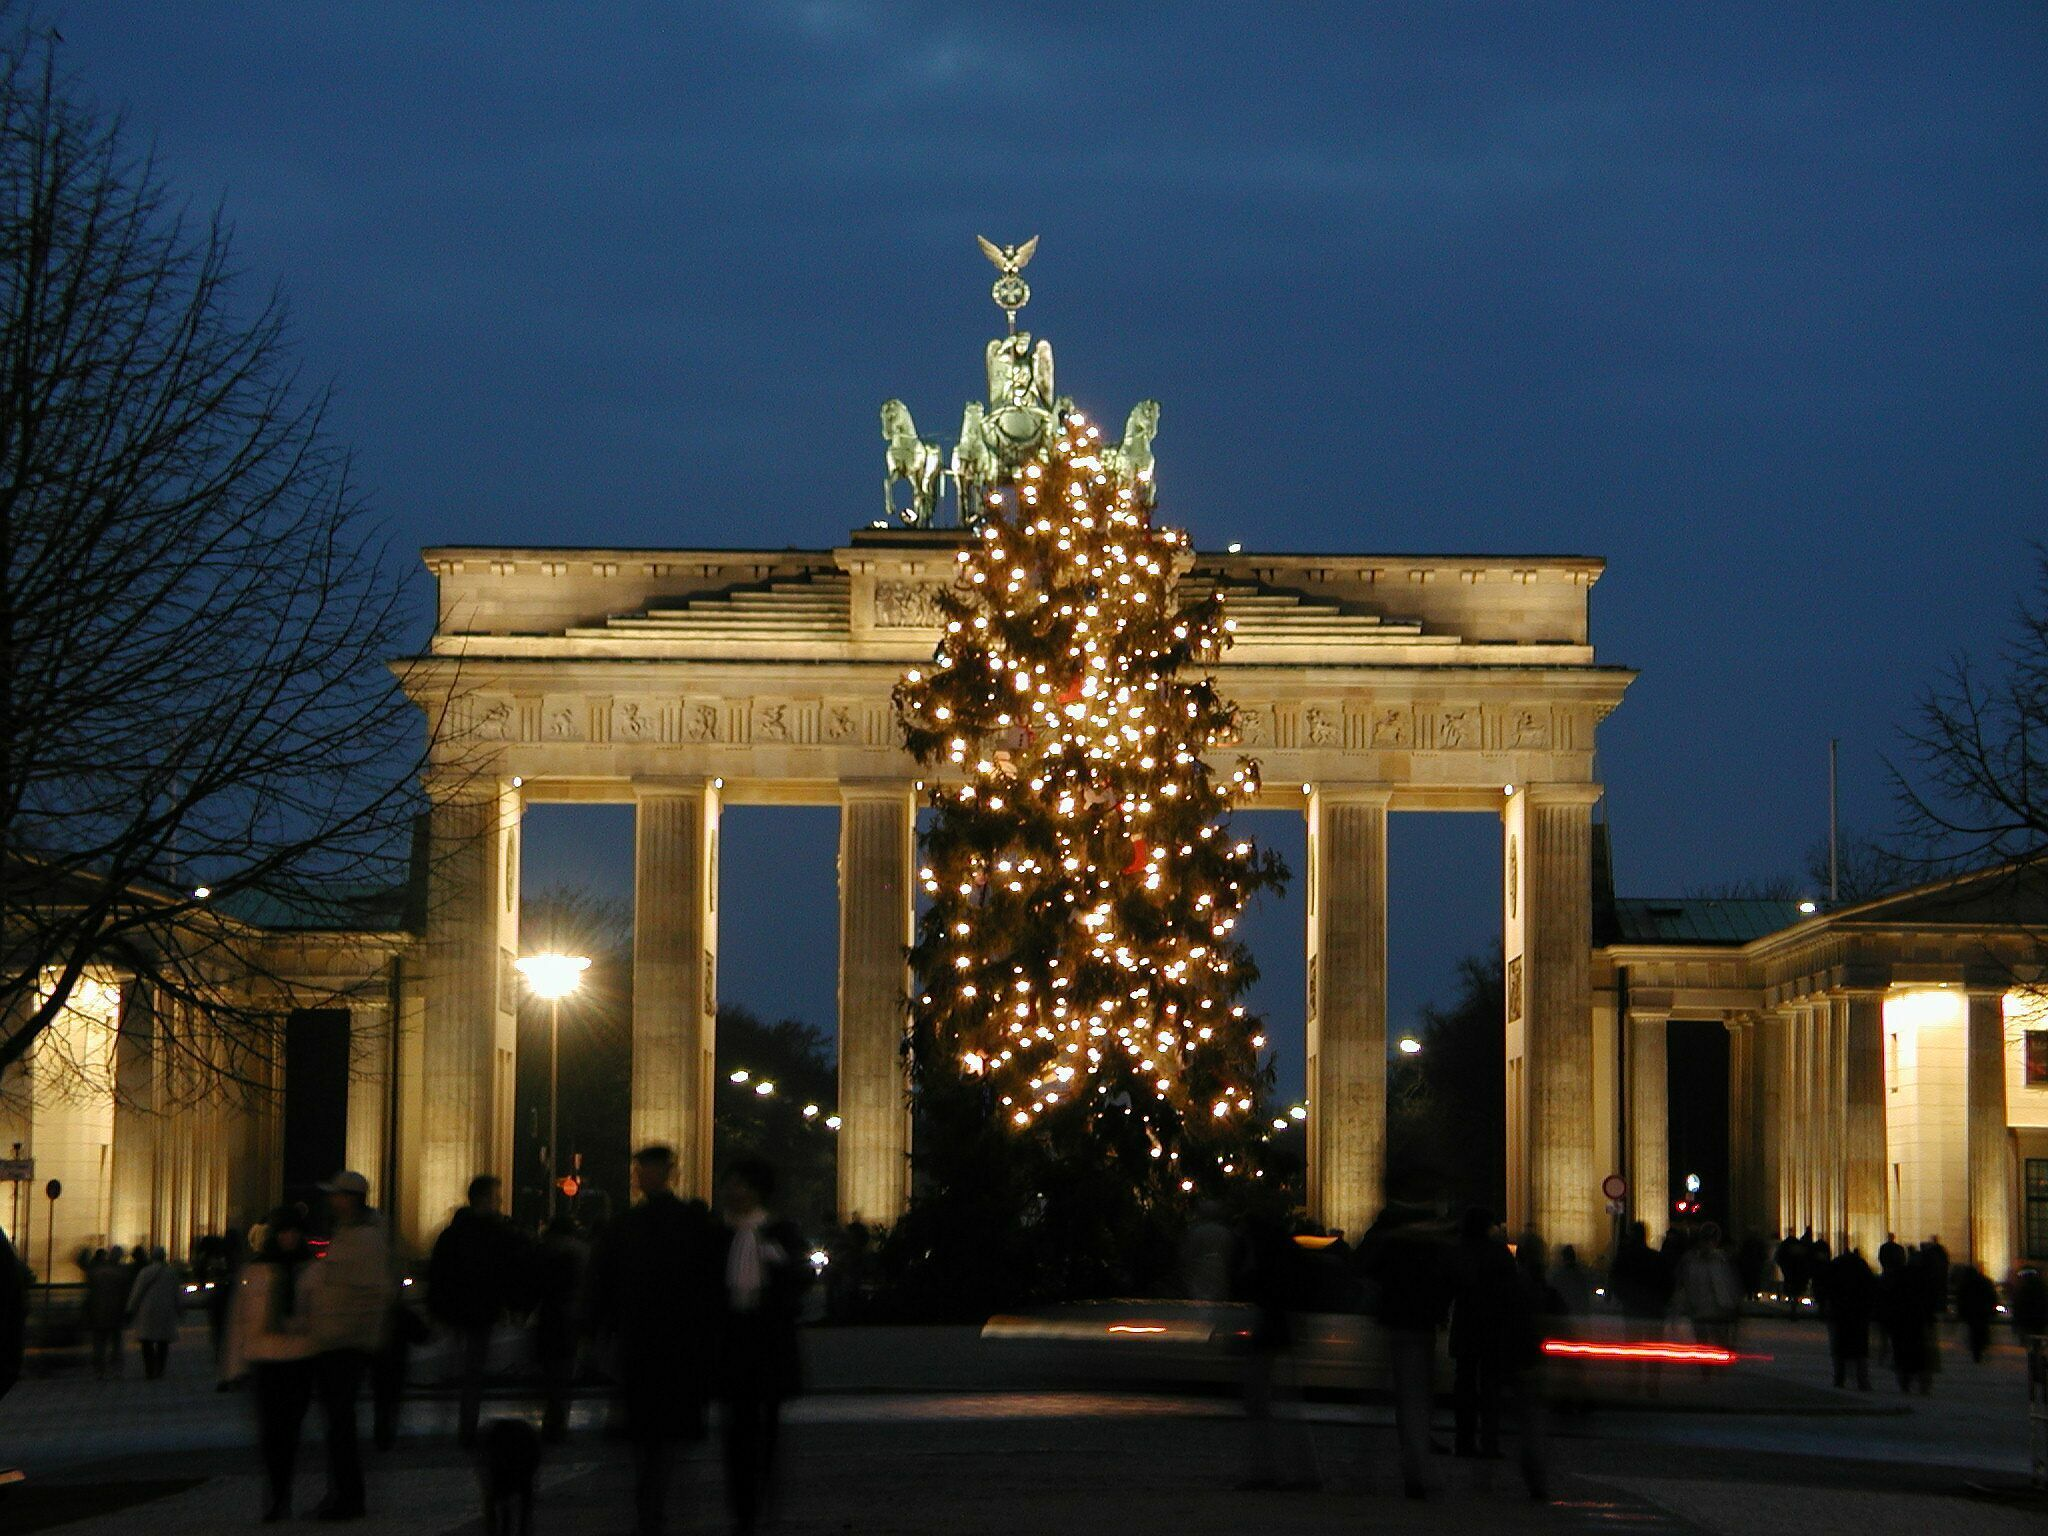 http://www.thewanderers.travel/blog/wp-content/uploads/2012/11/The-Brandenburg-Gate-Berlin.jpg